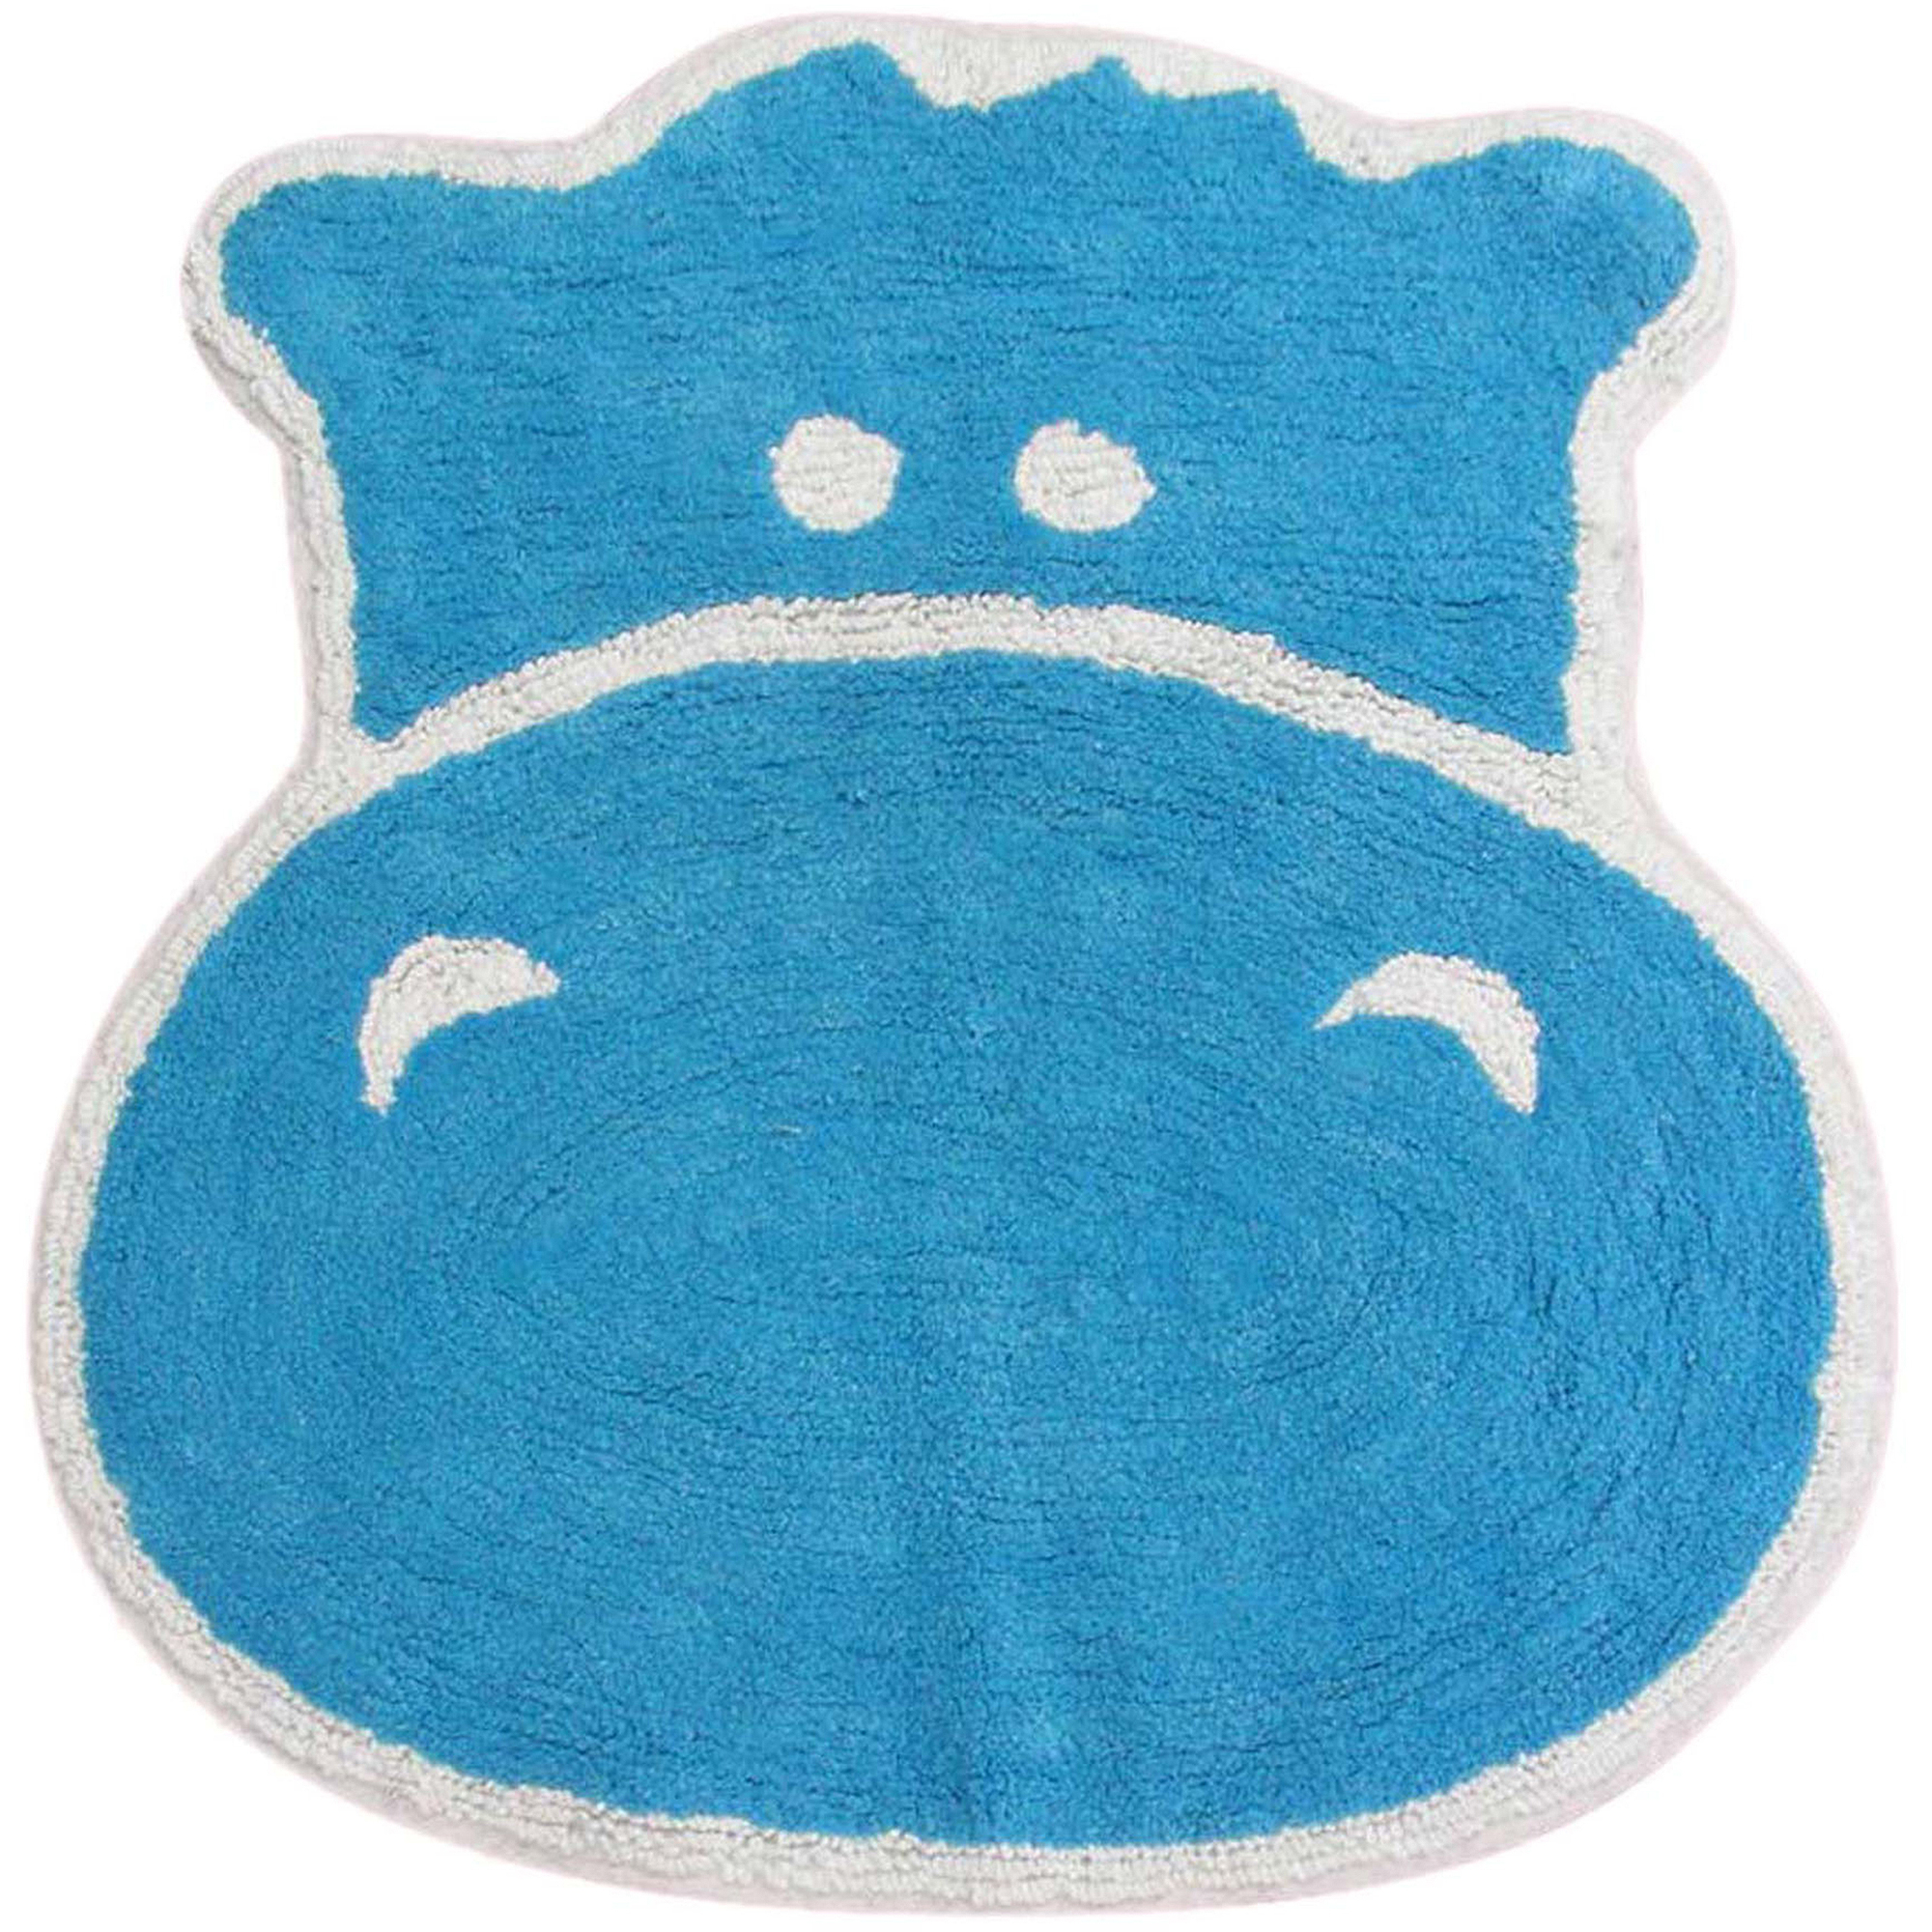 Allure Hippo Bath Rug